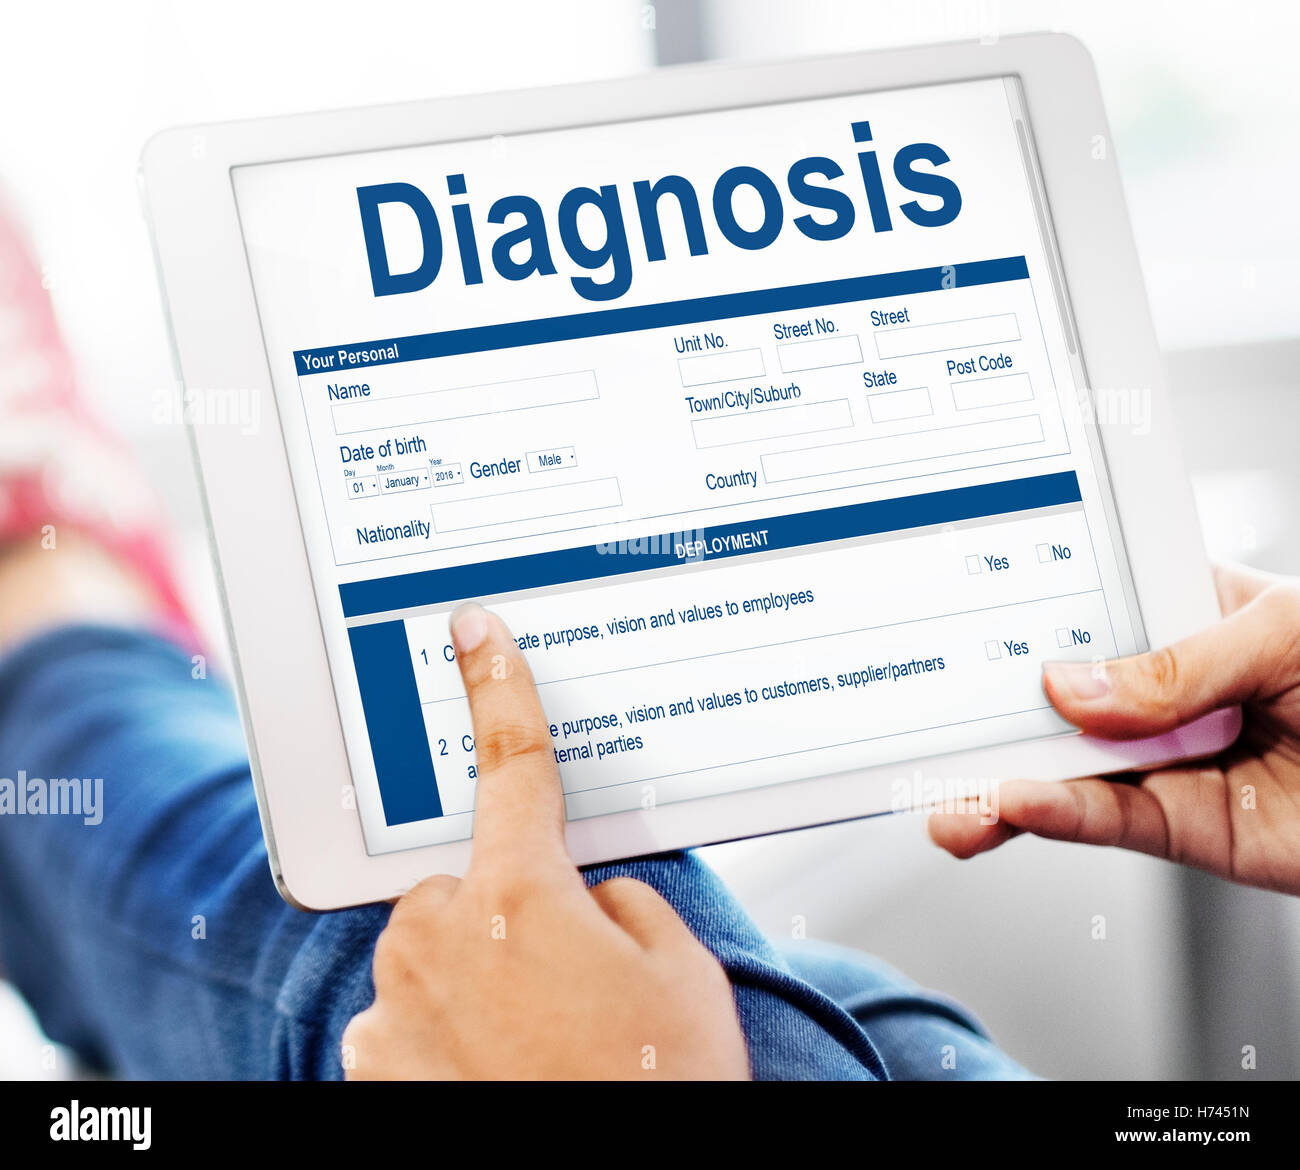 Diagnosis Clinical Document Personal Informatin Concept - Stock Image